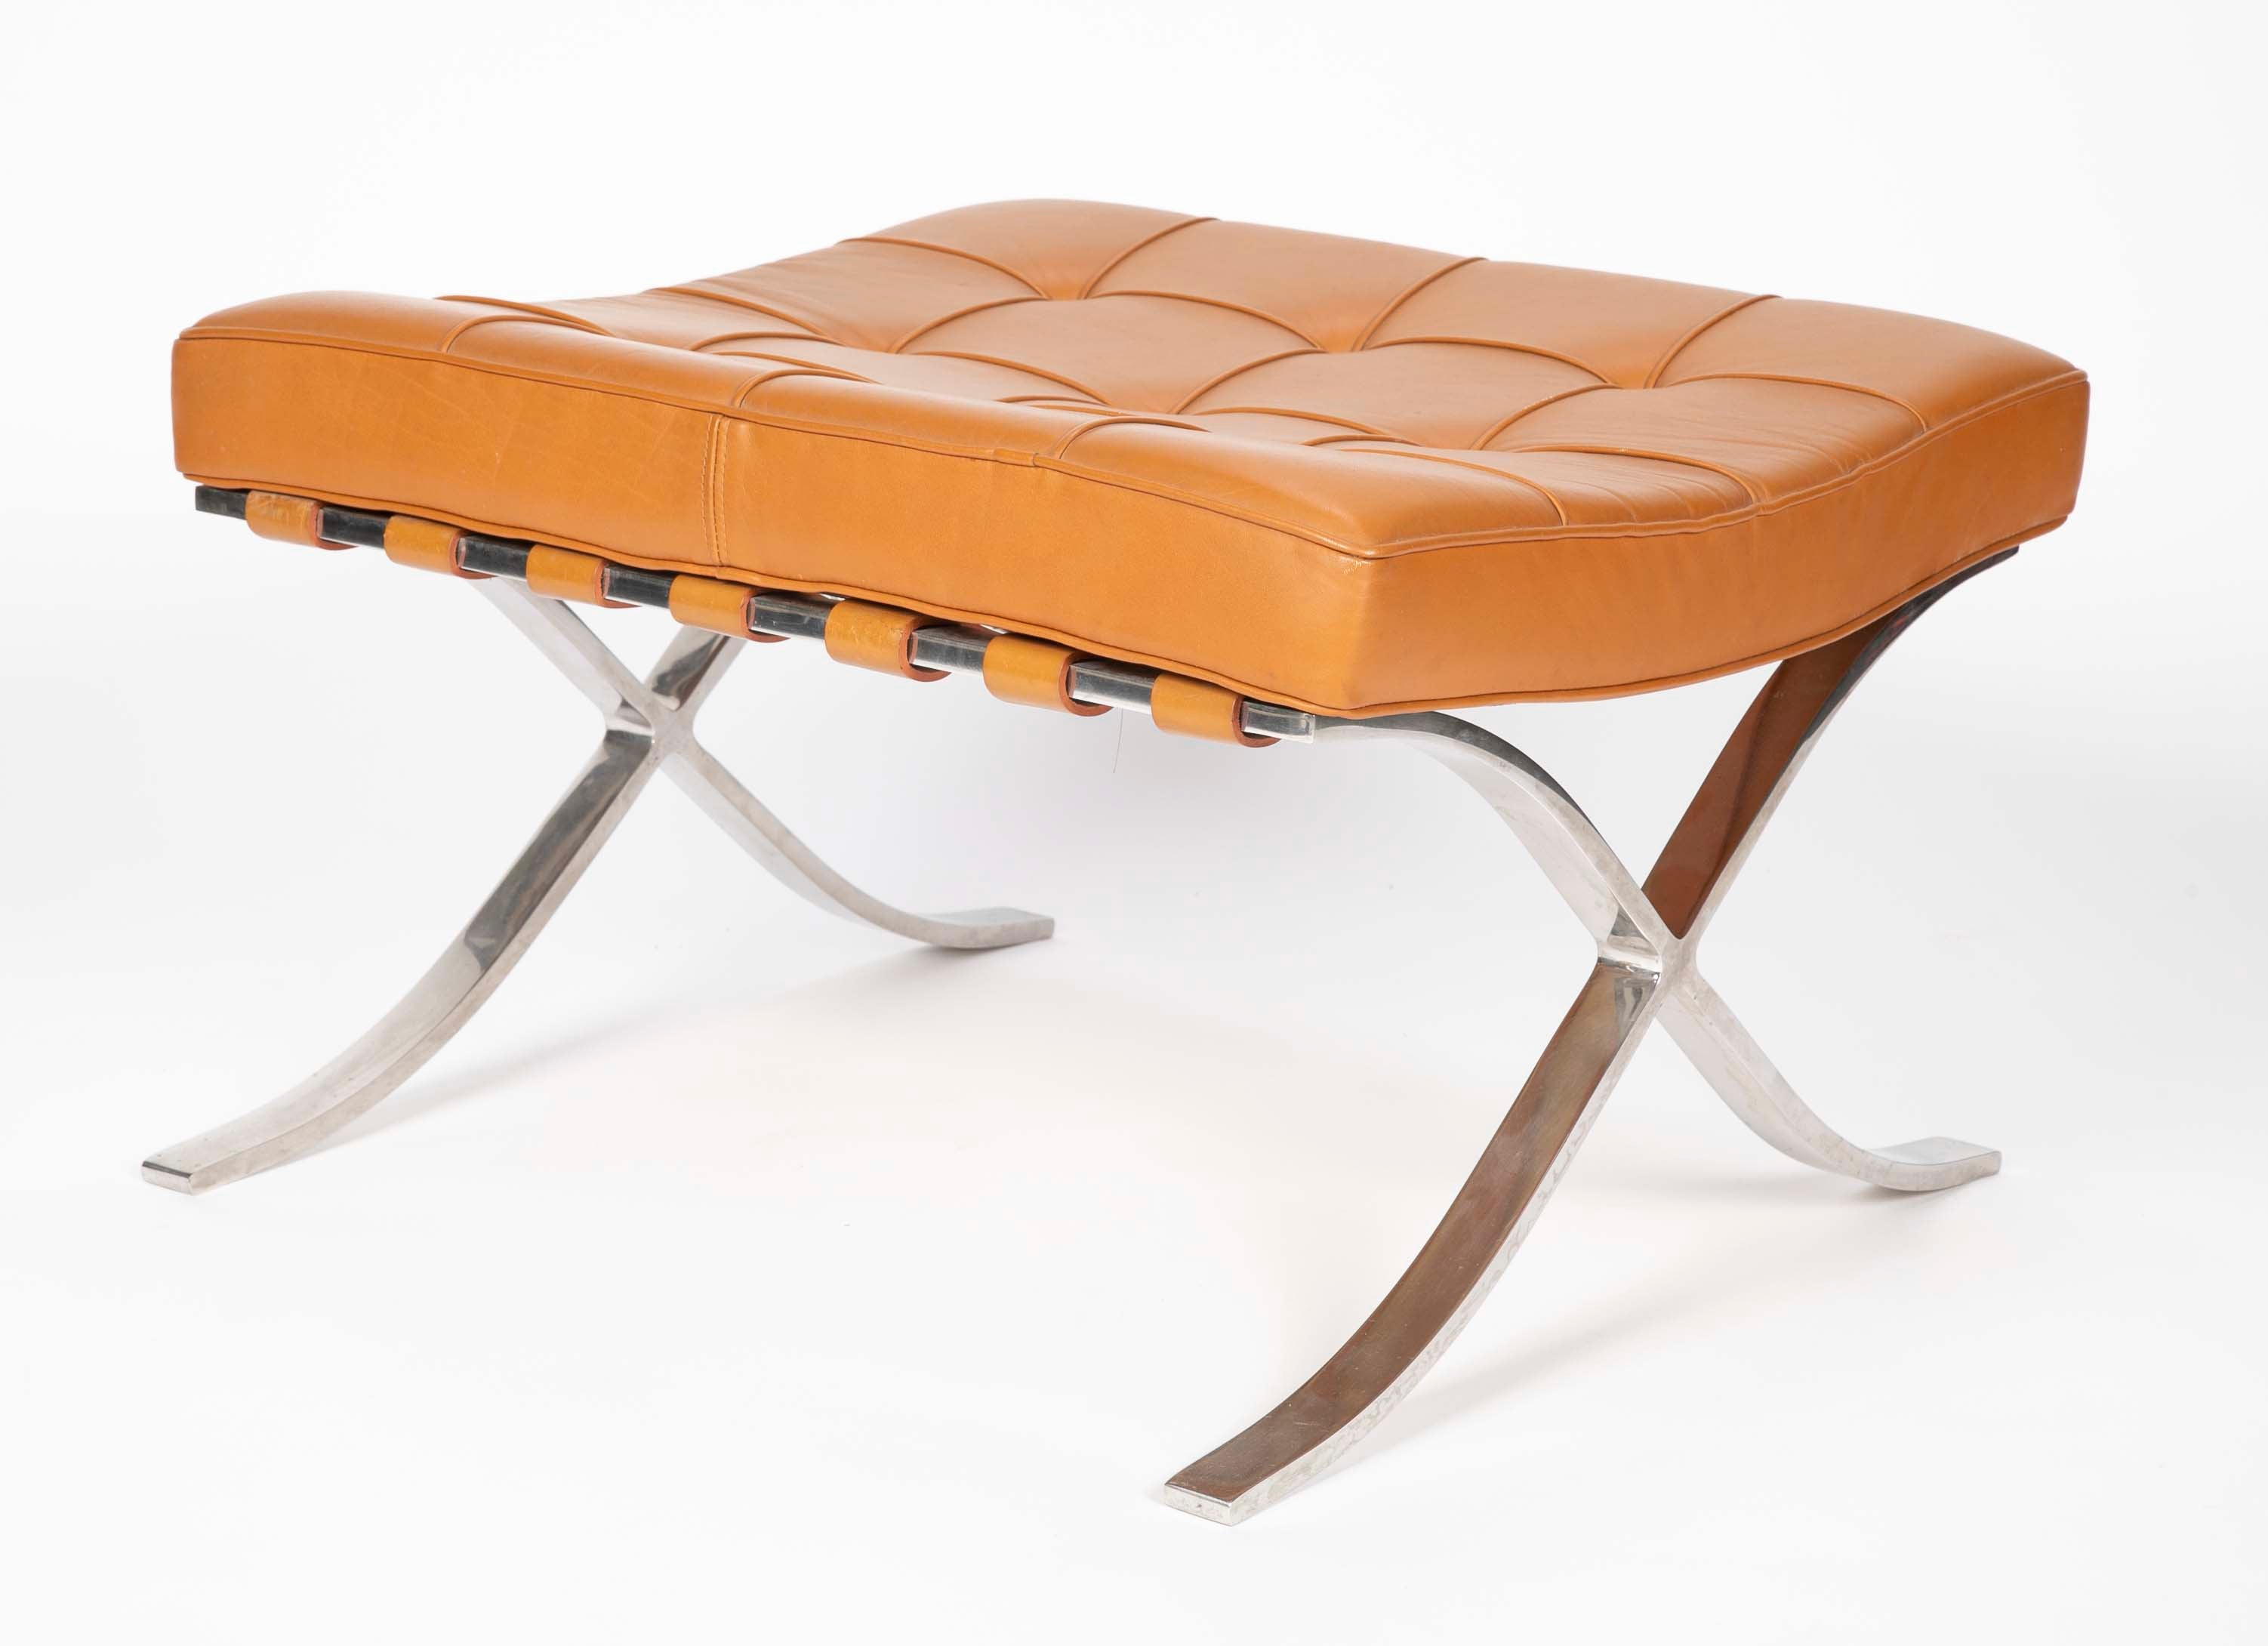 Pair of Mies van der Rohe for Knoll Barcelona Ottomans